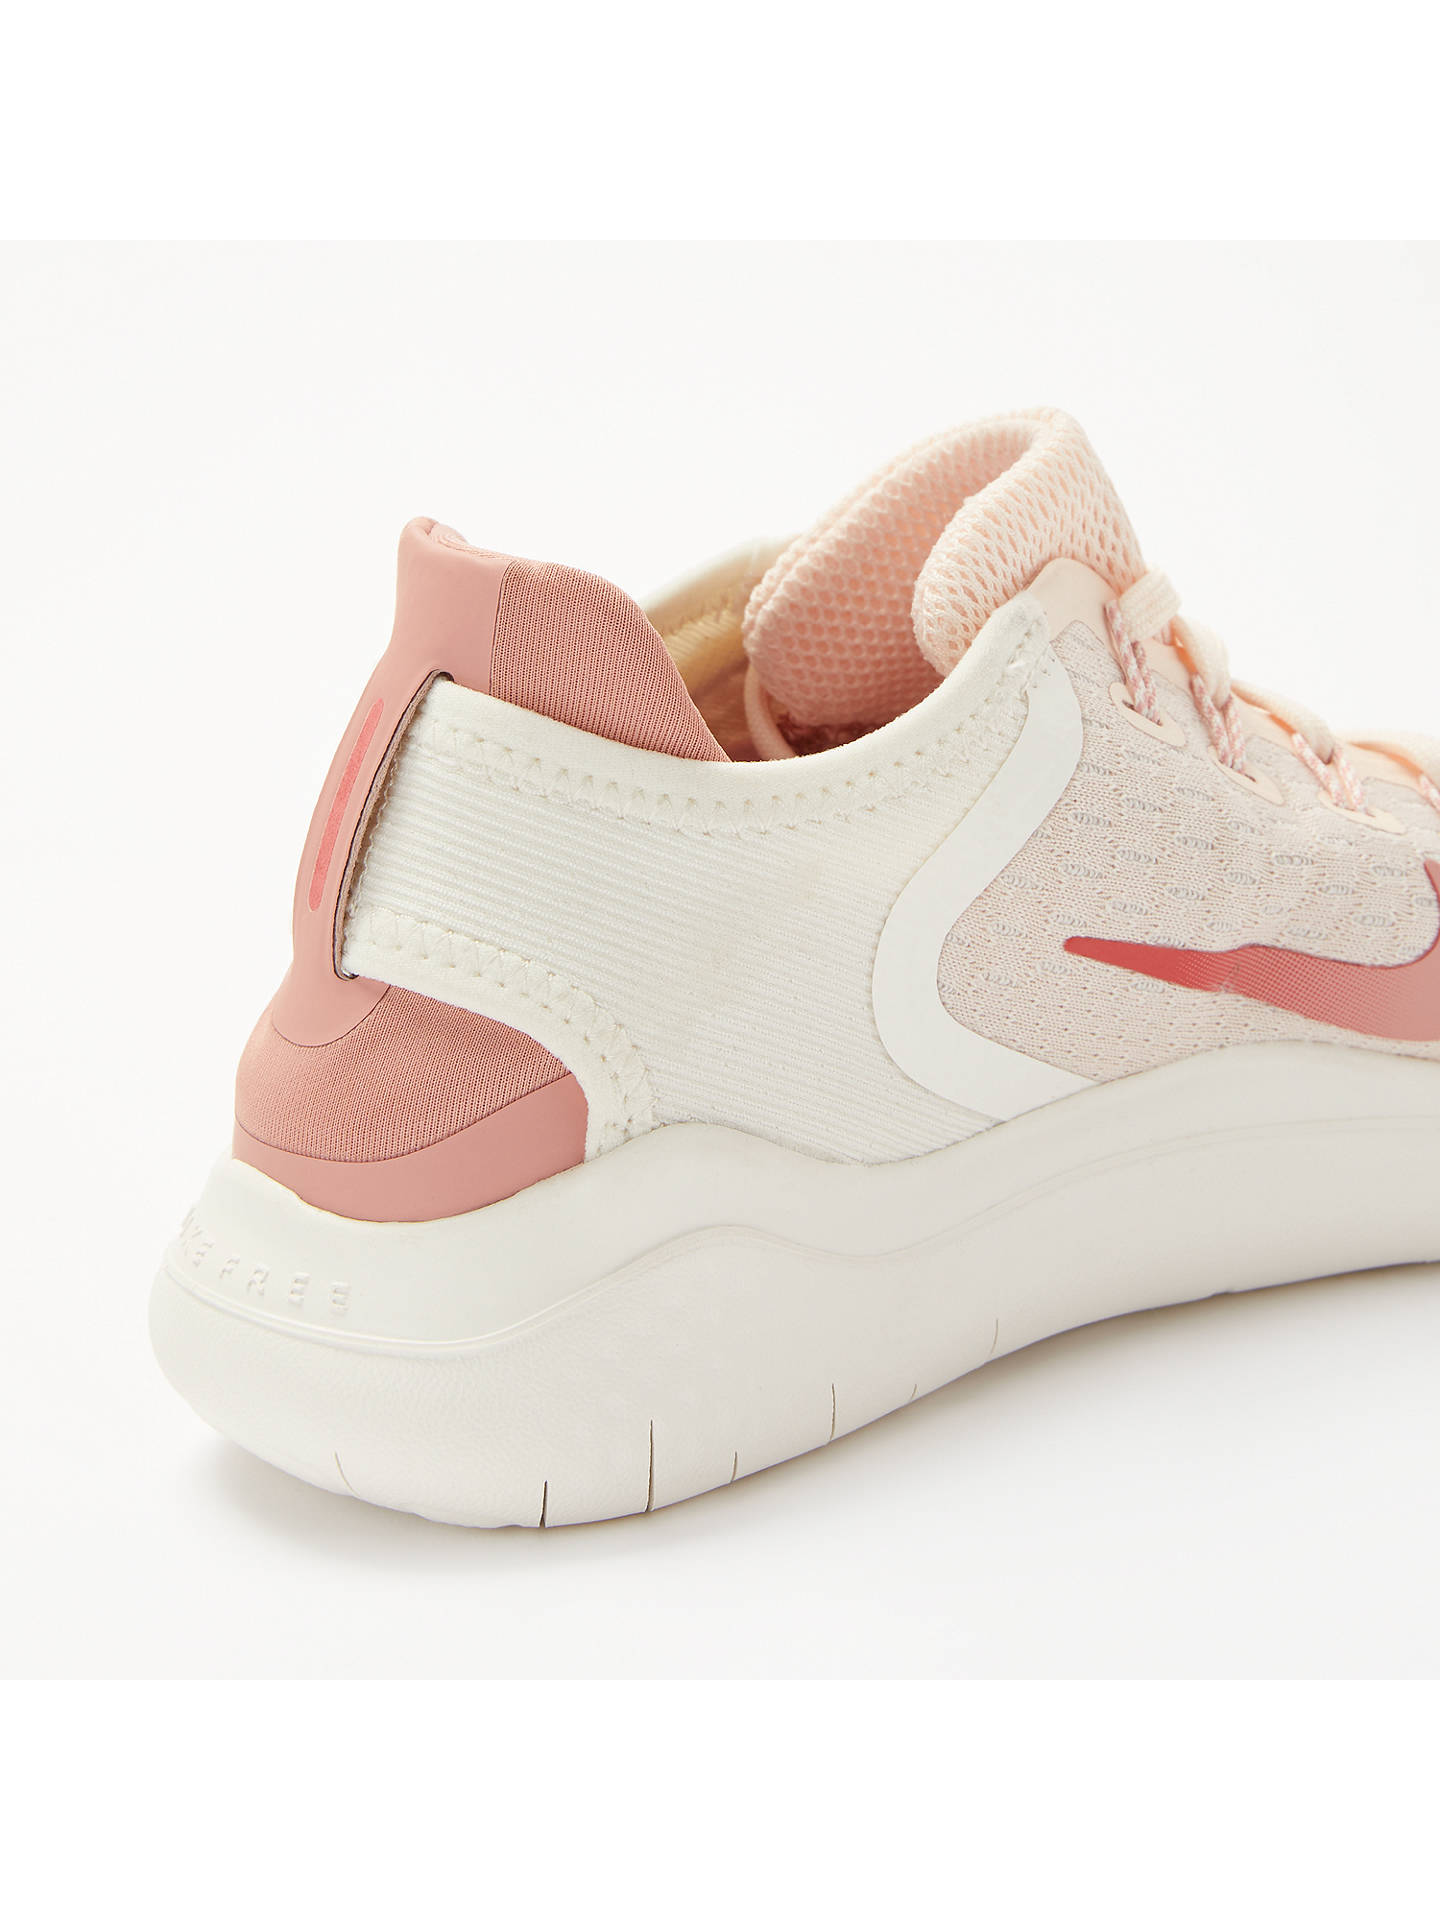 Nike Free RN 2018 Women's Running Shoes, Guava Ice/Rust Pink at John